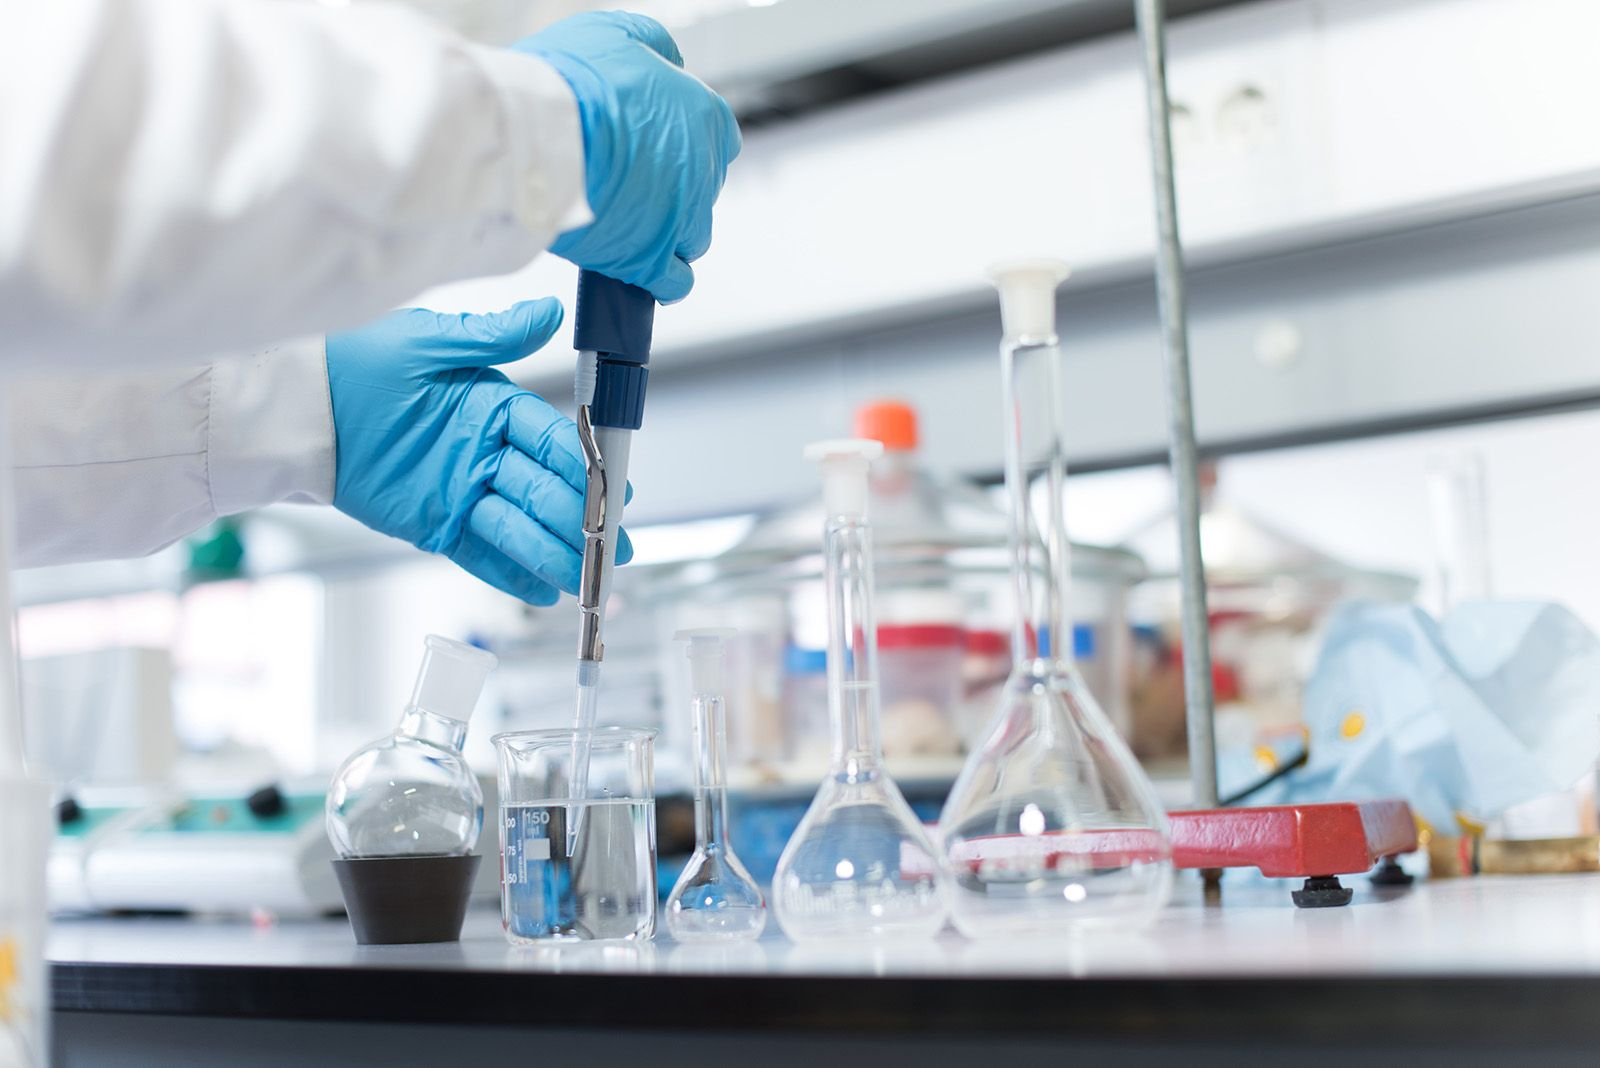 Chemical scientist working in modern biological laboratory